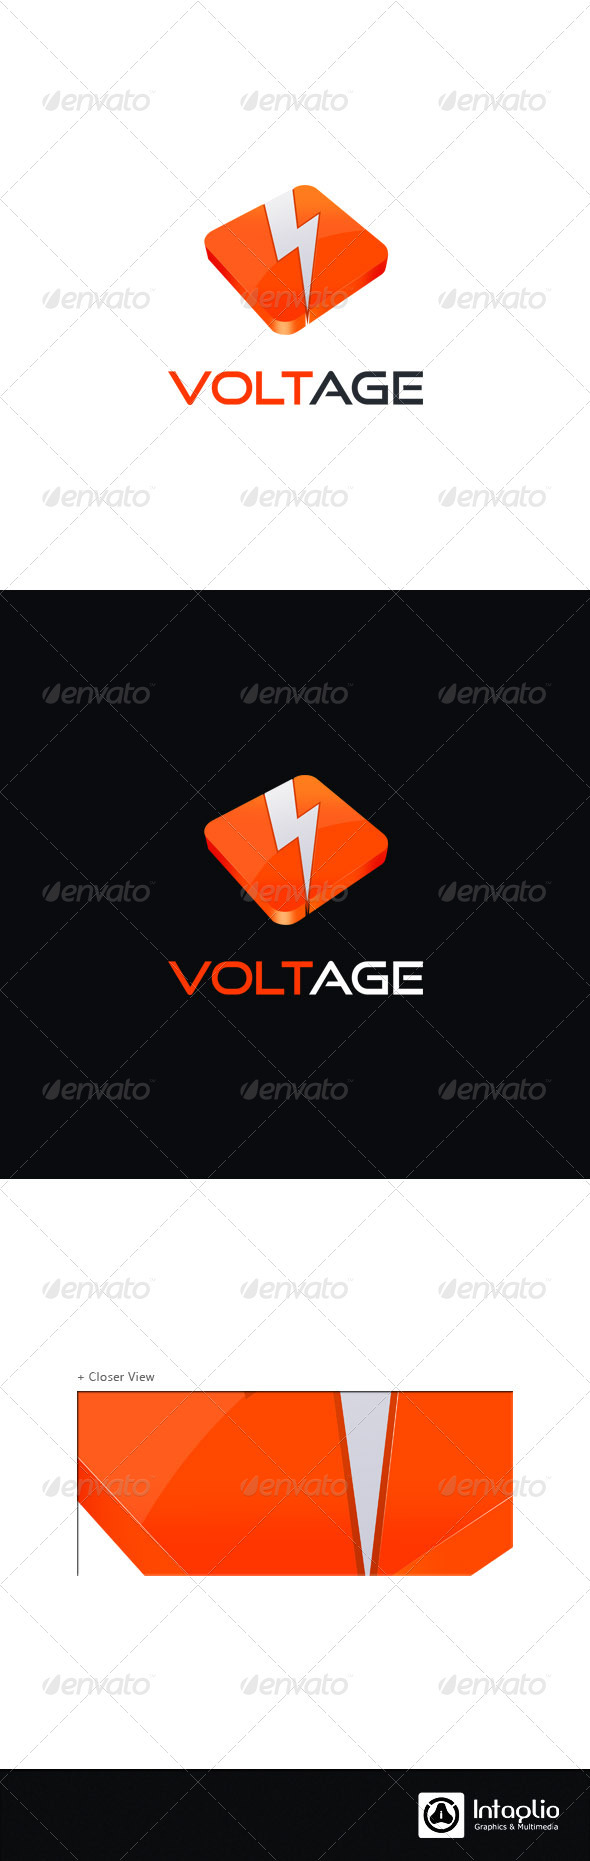 Creative 3D Logo - Voltage - 3d Abstract